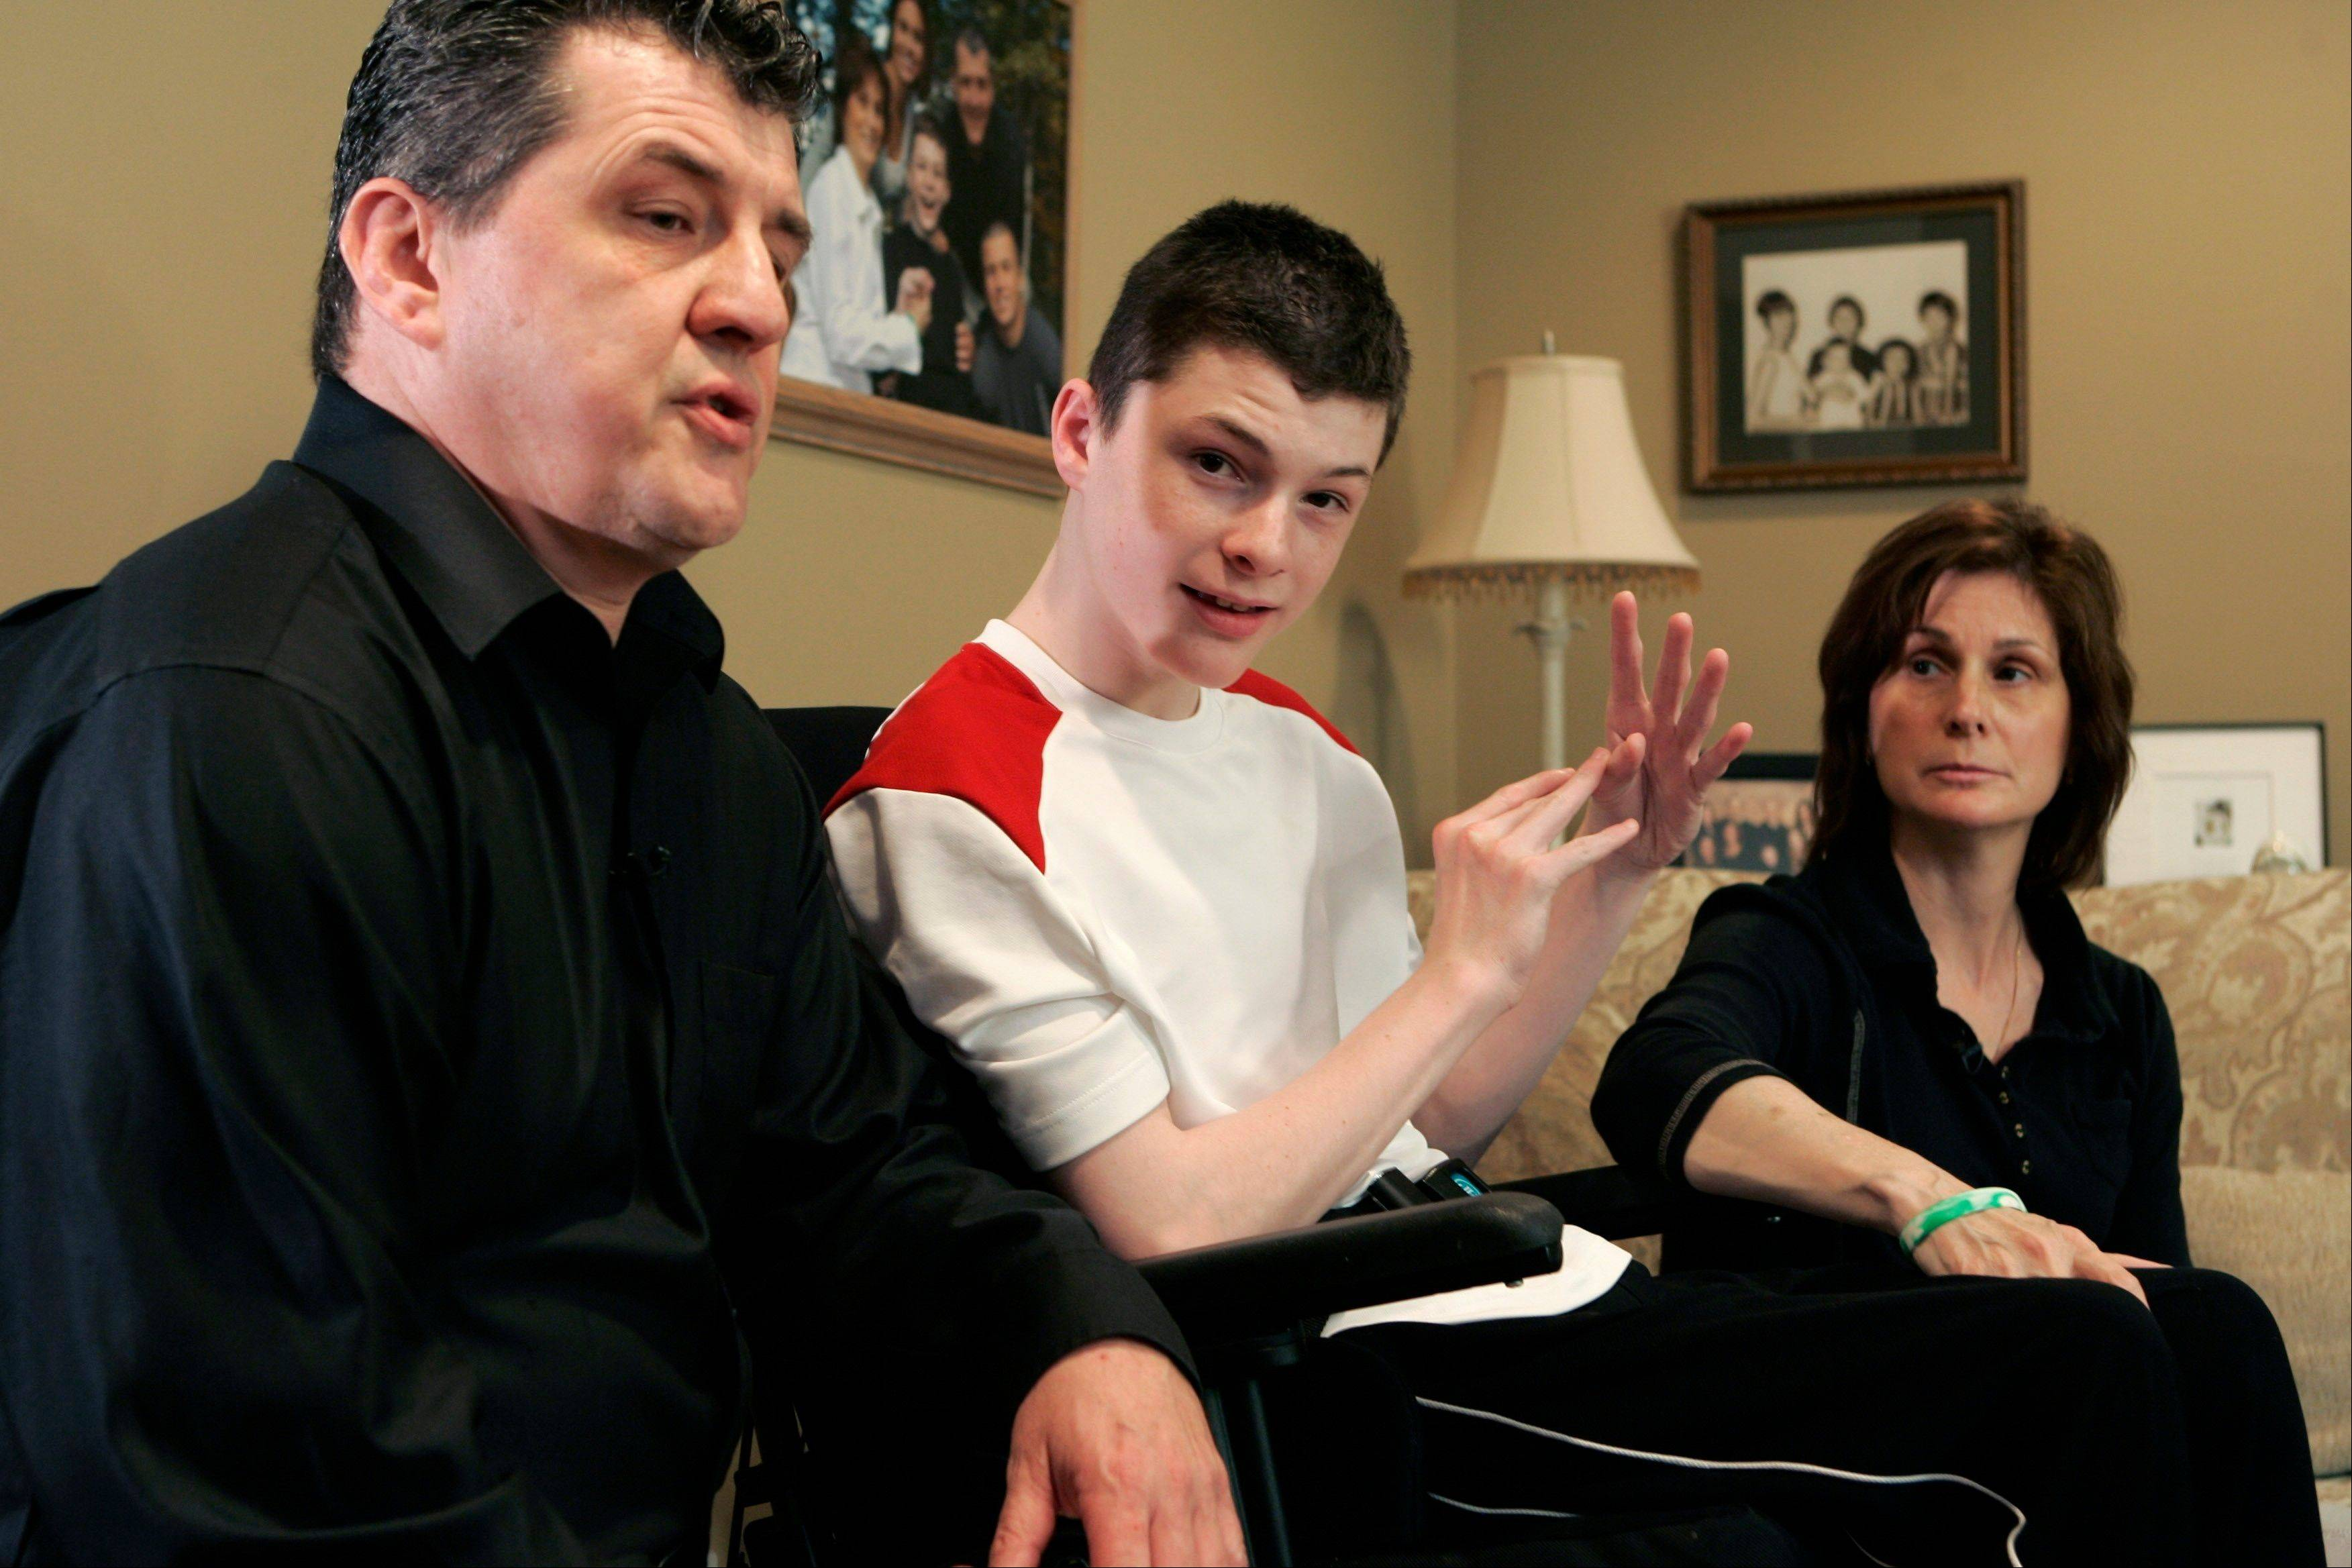 In this file photo from 2008, Steven Domalewski, center, sits with his parents, Joseph and Nancy Domalewski, during an interview at their home in Wayne, N.J. Domalewski was left brain-damaged after being struck by a line drive while he was playing in a youth baseball game.